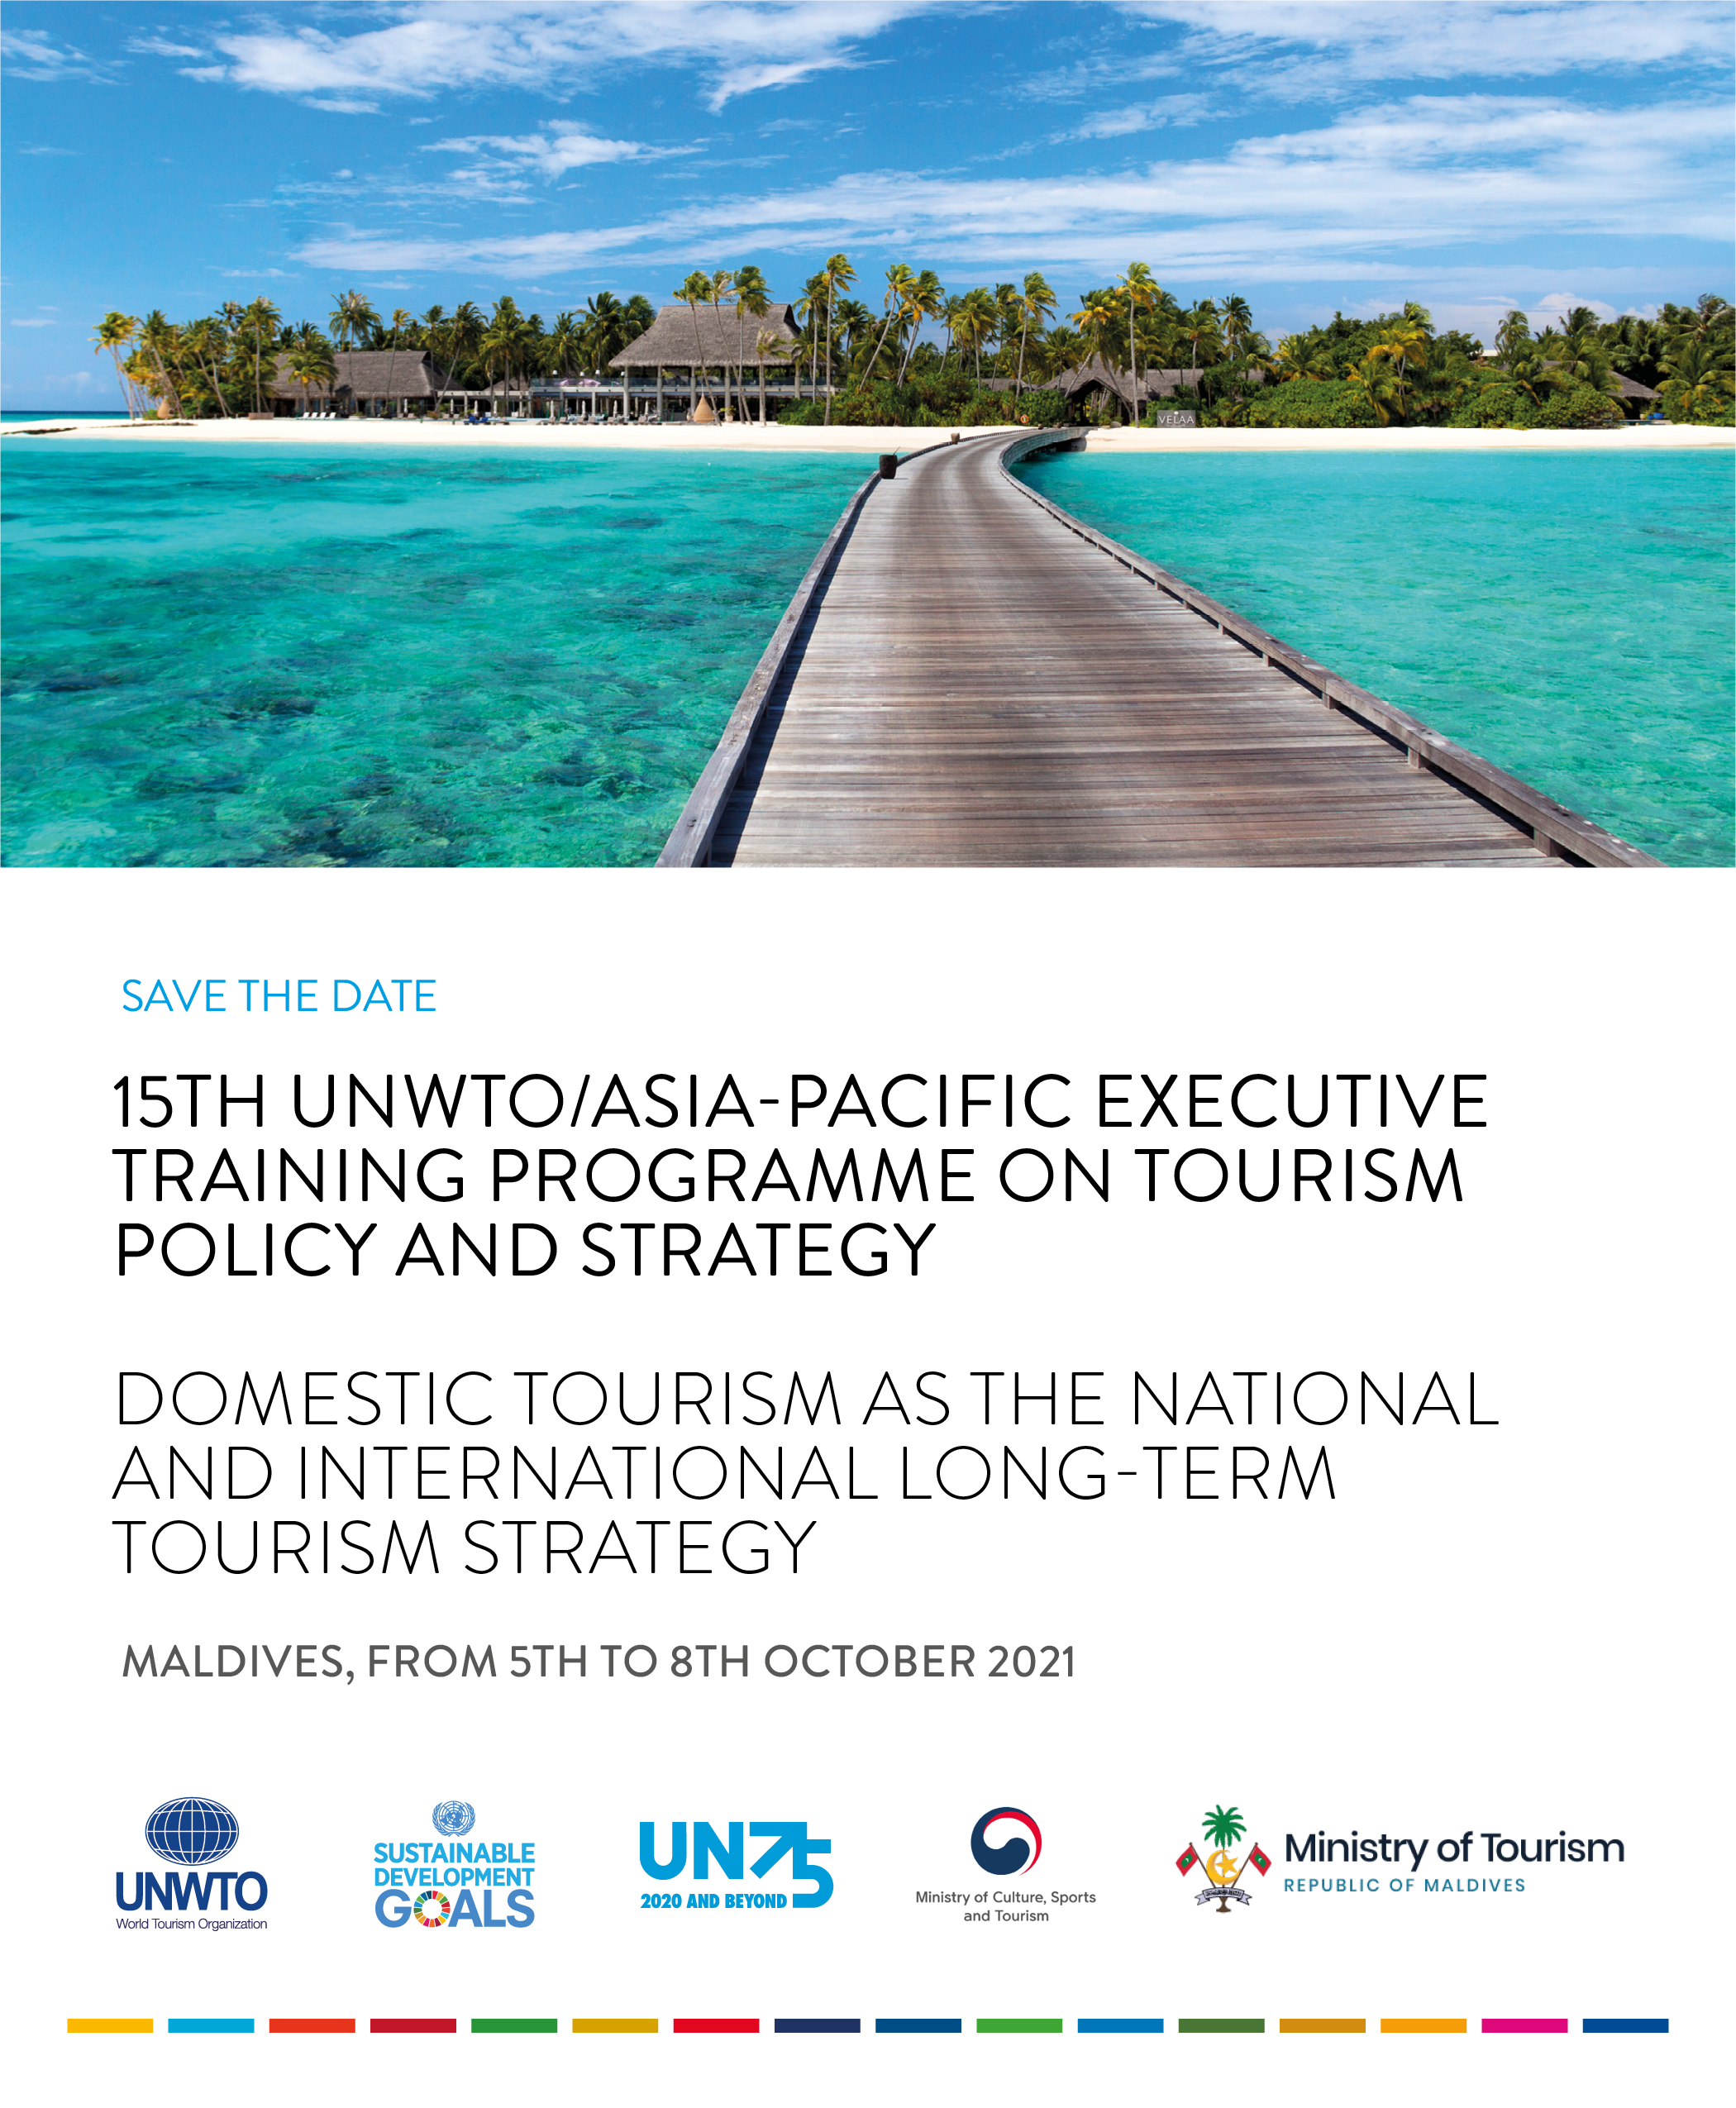 Save The Date: The 15th UNWTO Asia/Pacific Executive Training Programme on Tourism Policy and Strategy